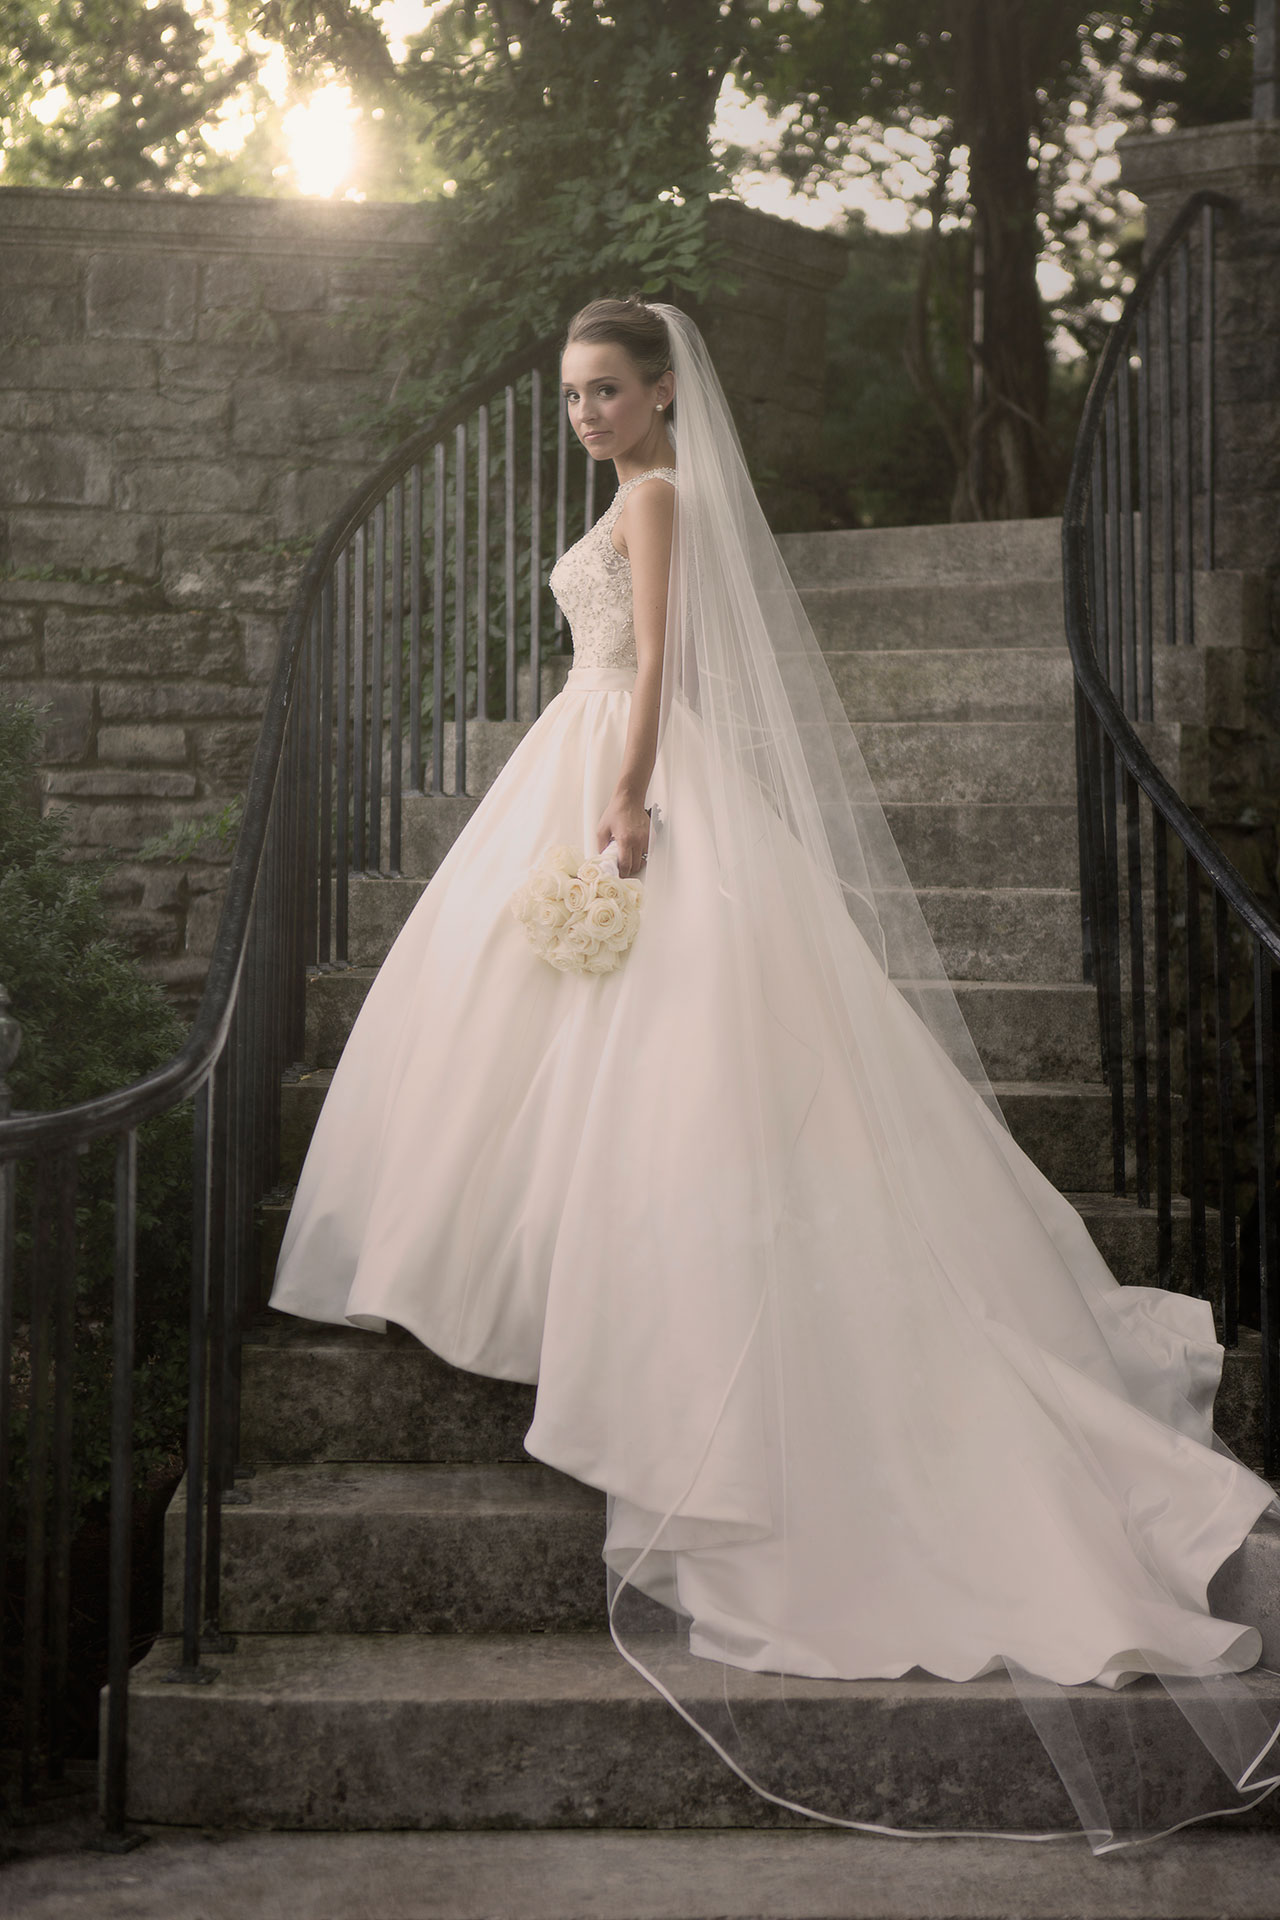 Pretty Wedding Gown With Long Veil Ideas - Images for wedding gown ...